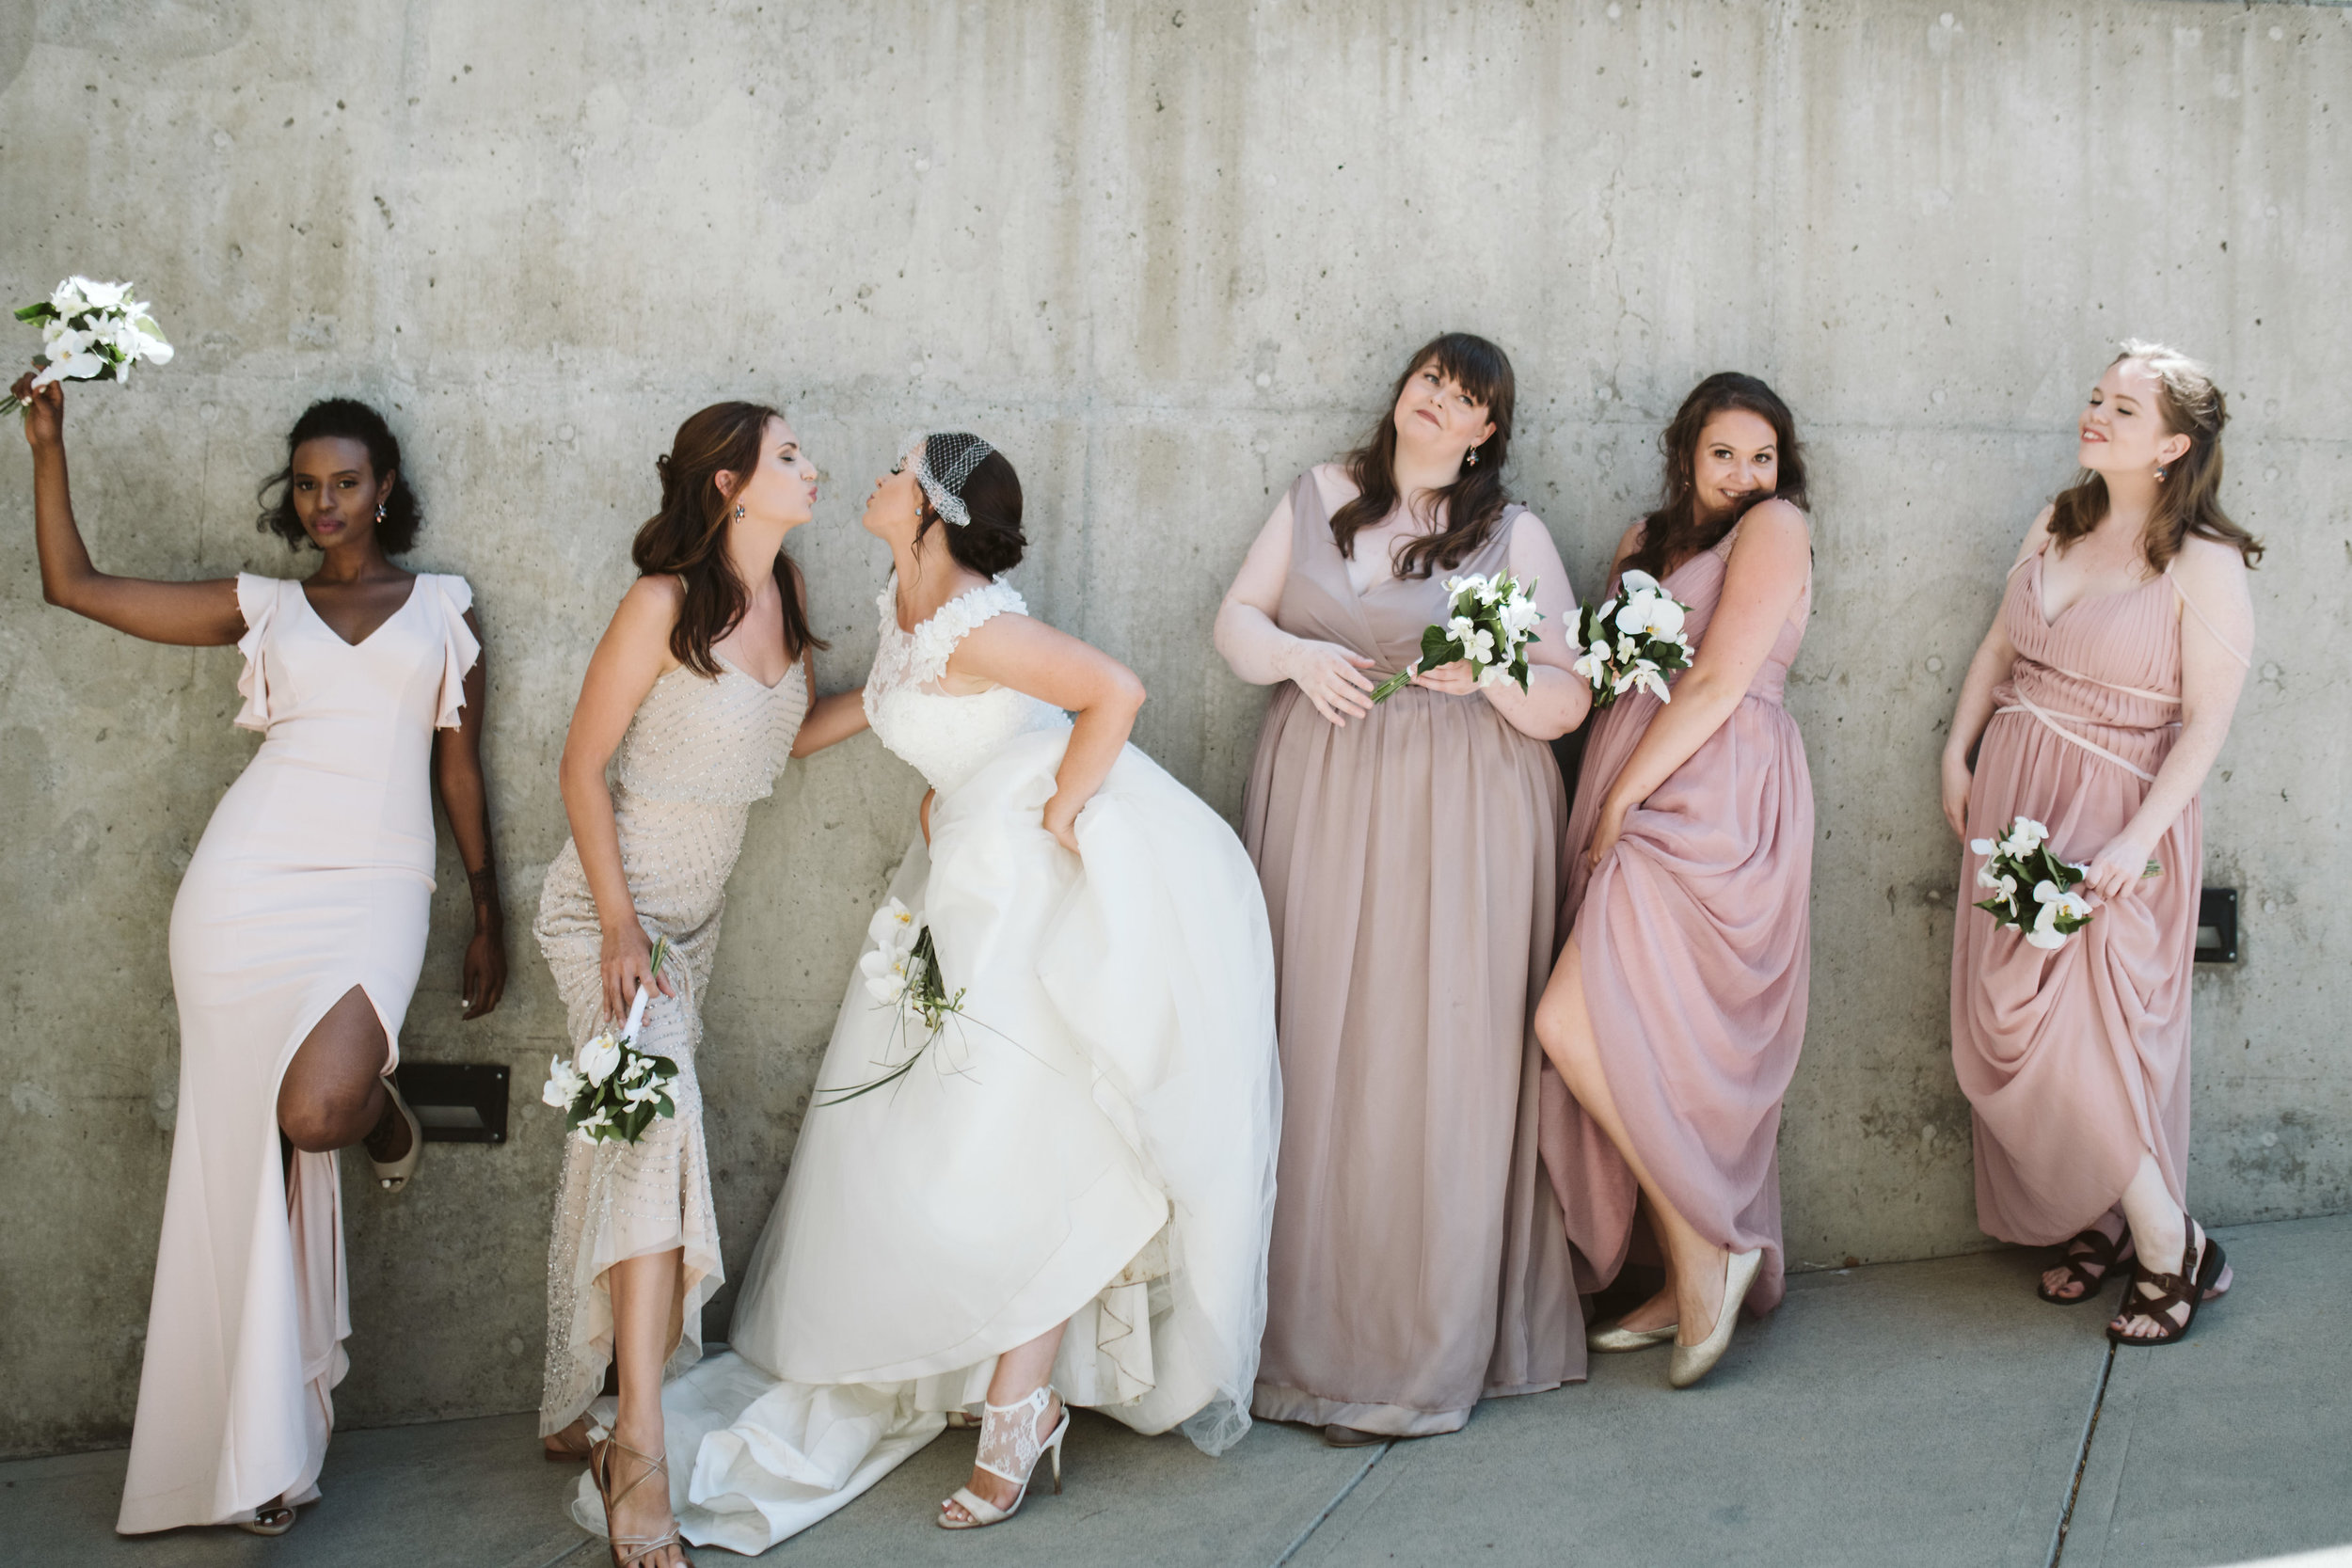 Bridesmaids fun